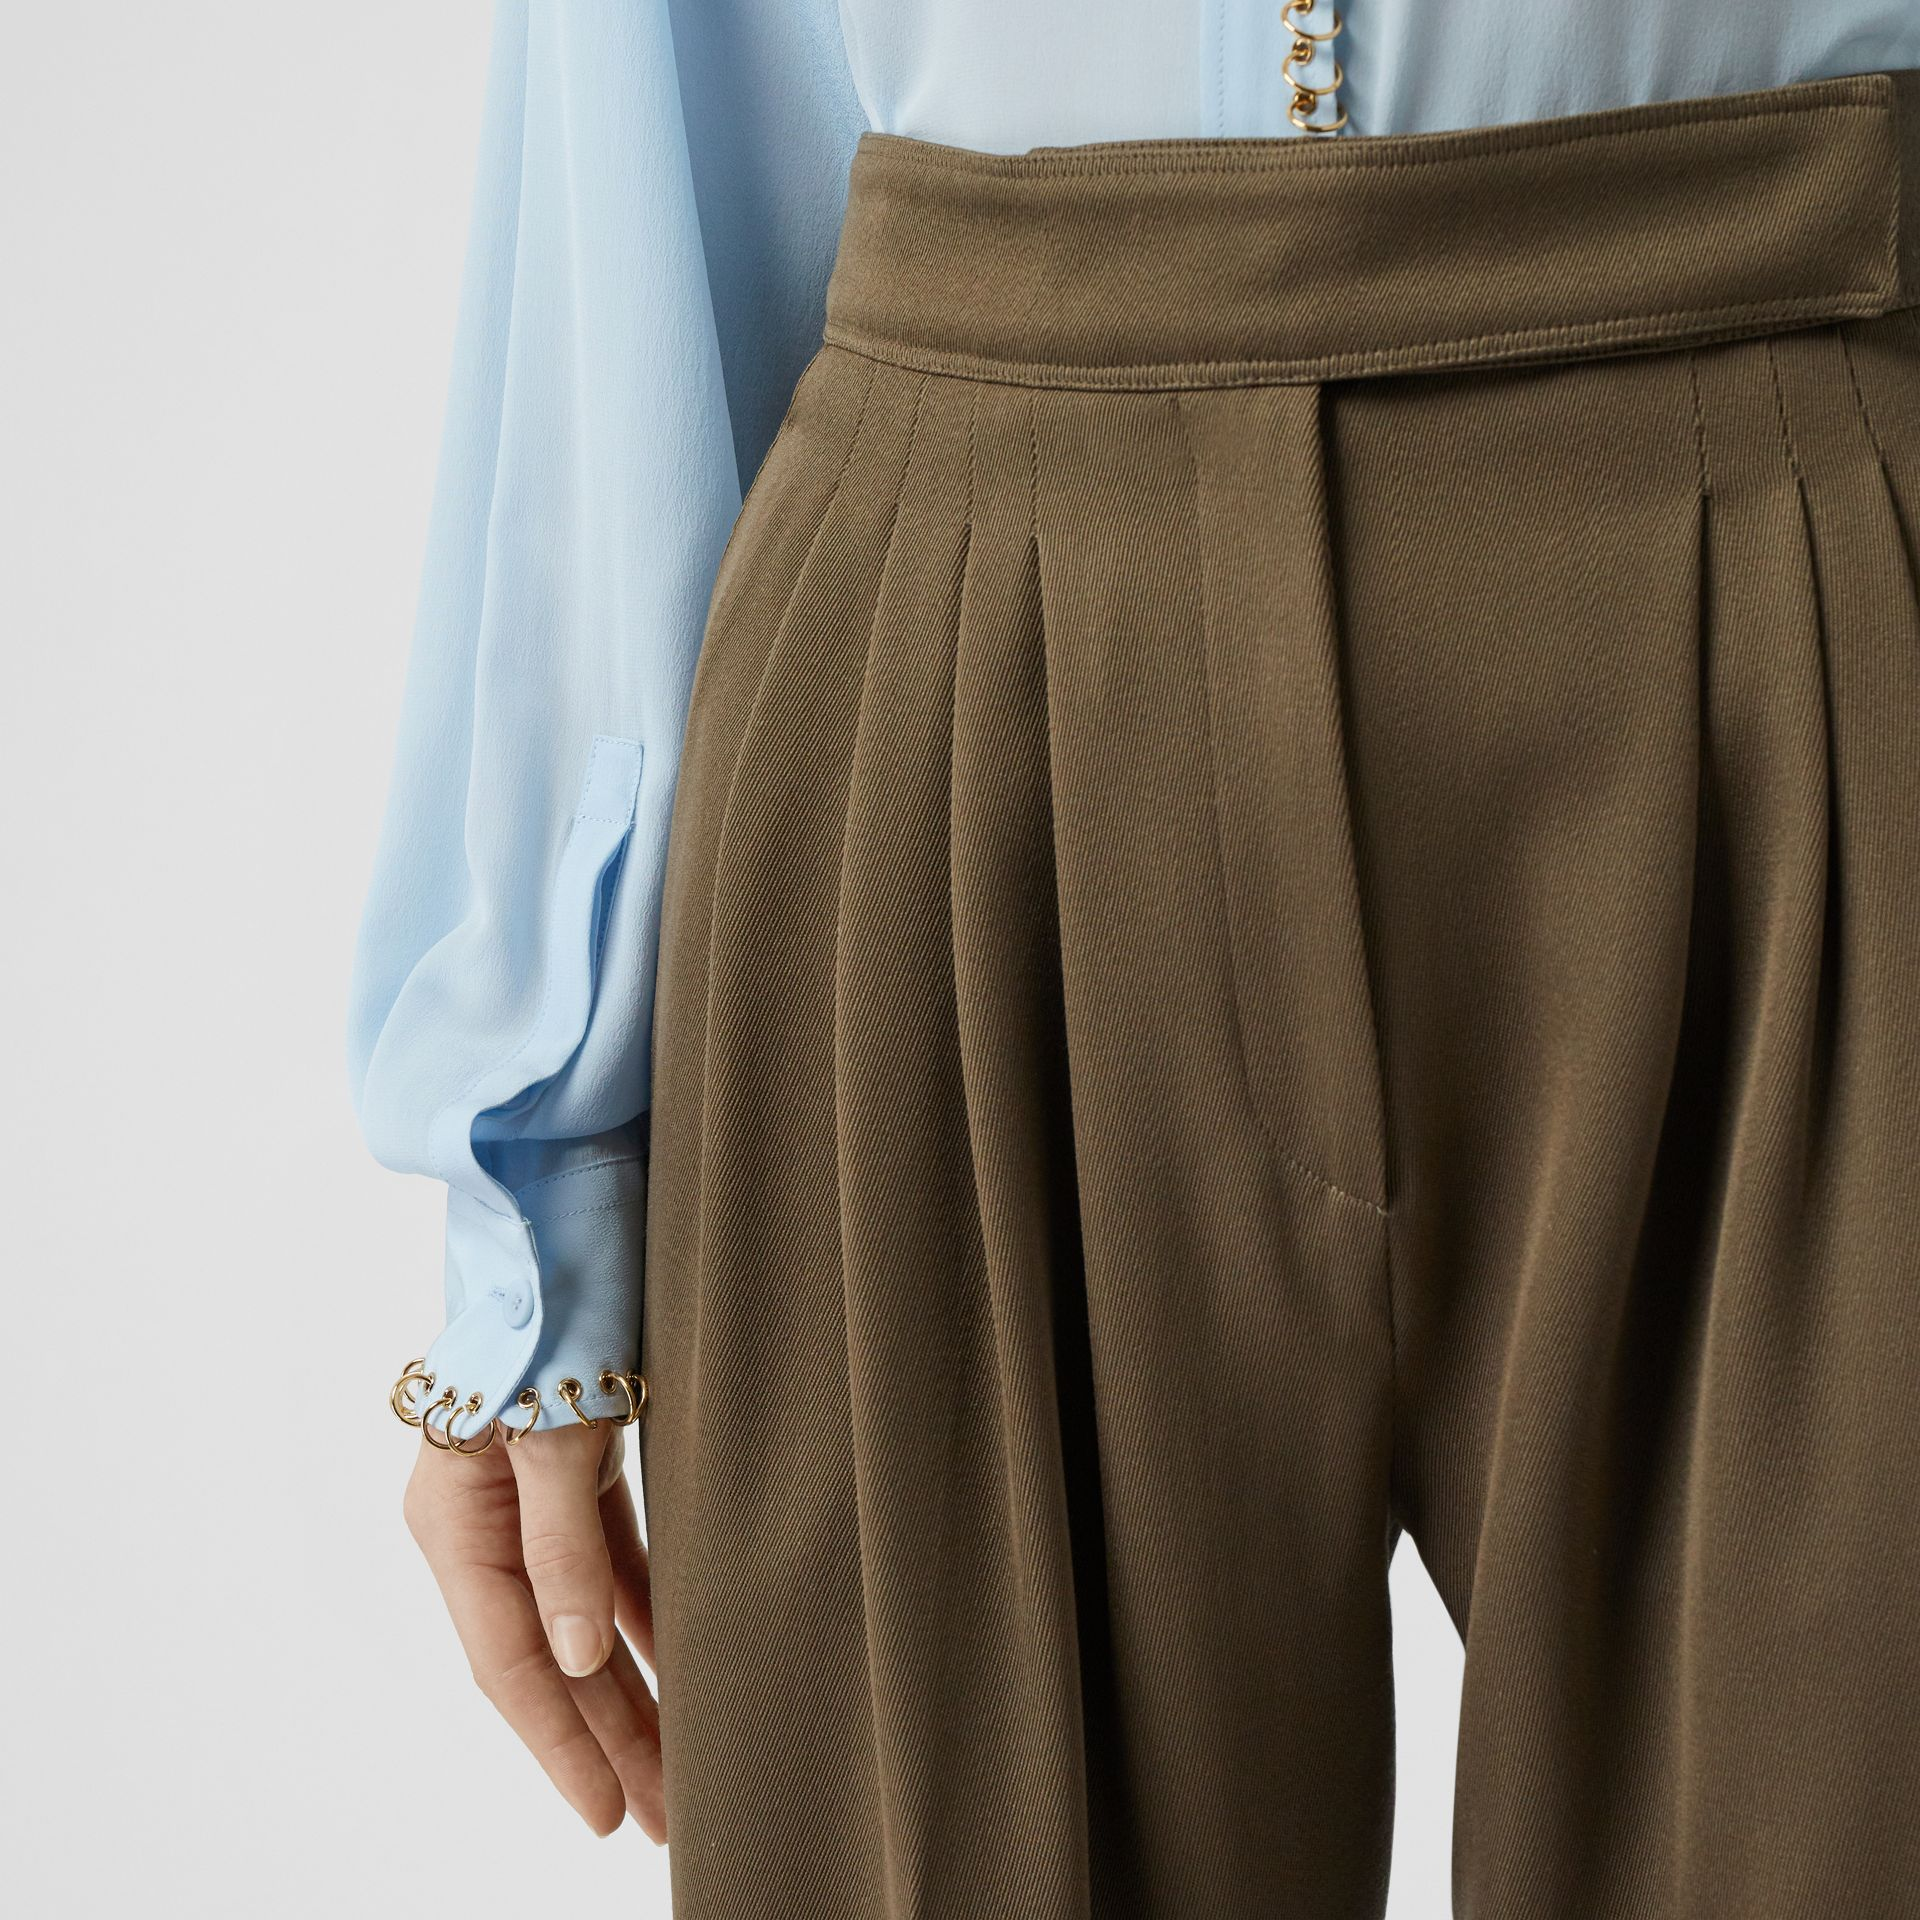 Pleat Detail Wool Twill Tailored Trousers in Warm Taupe - Women | Burberry - gallery image 5